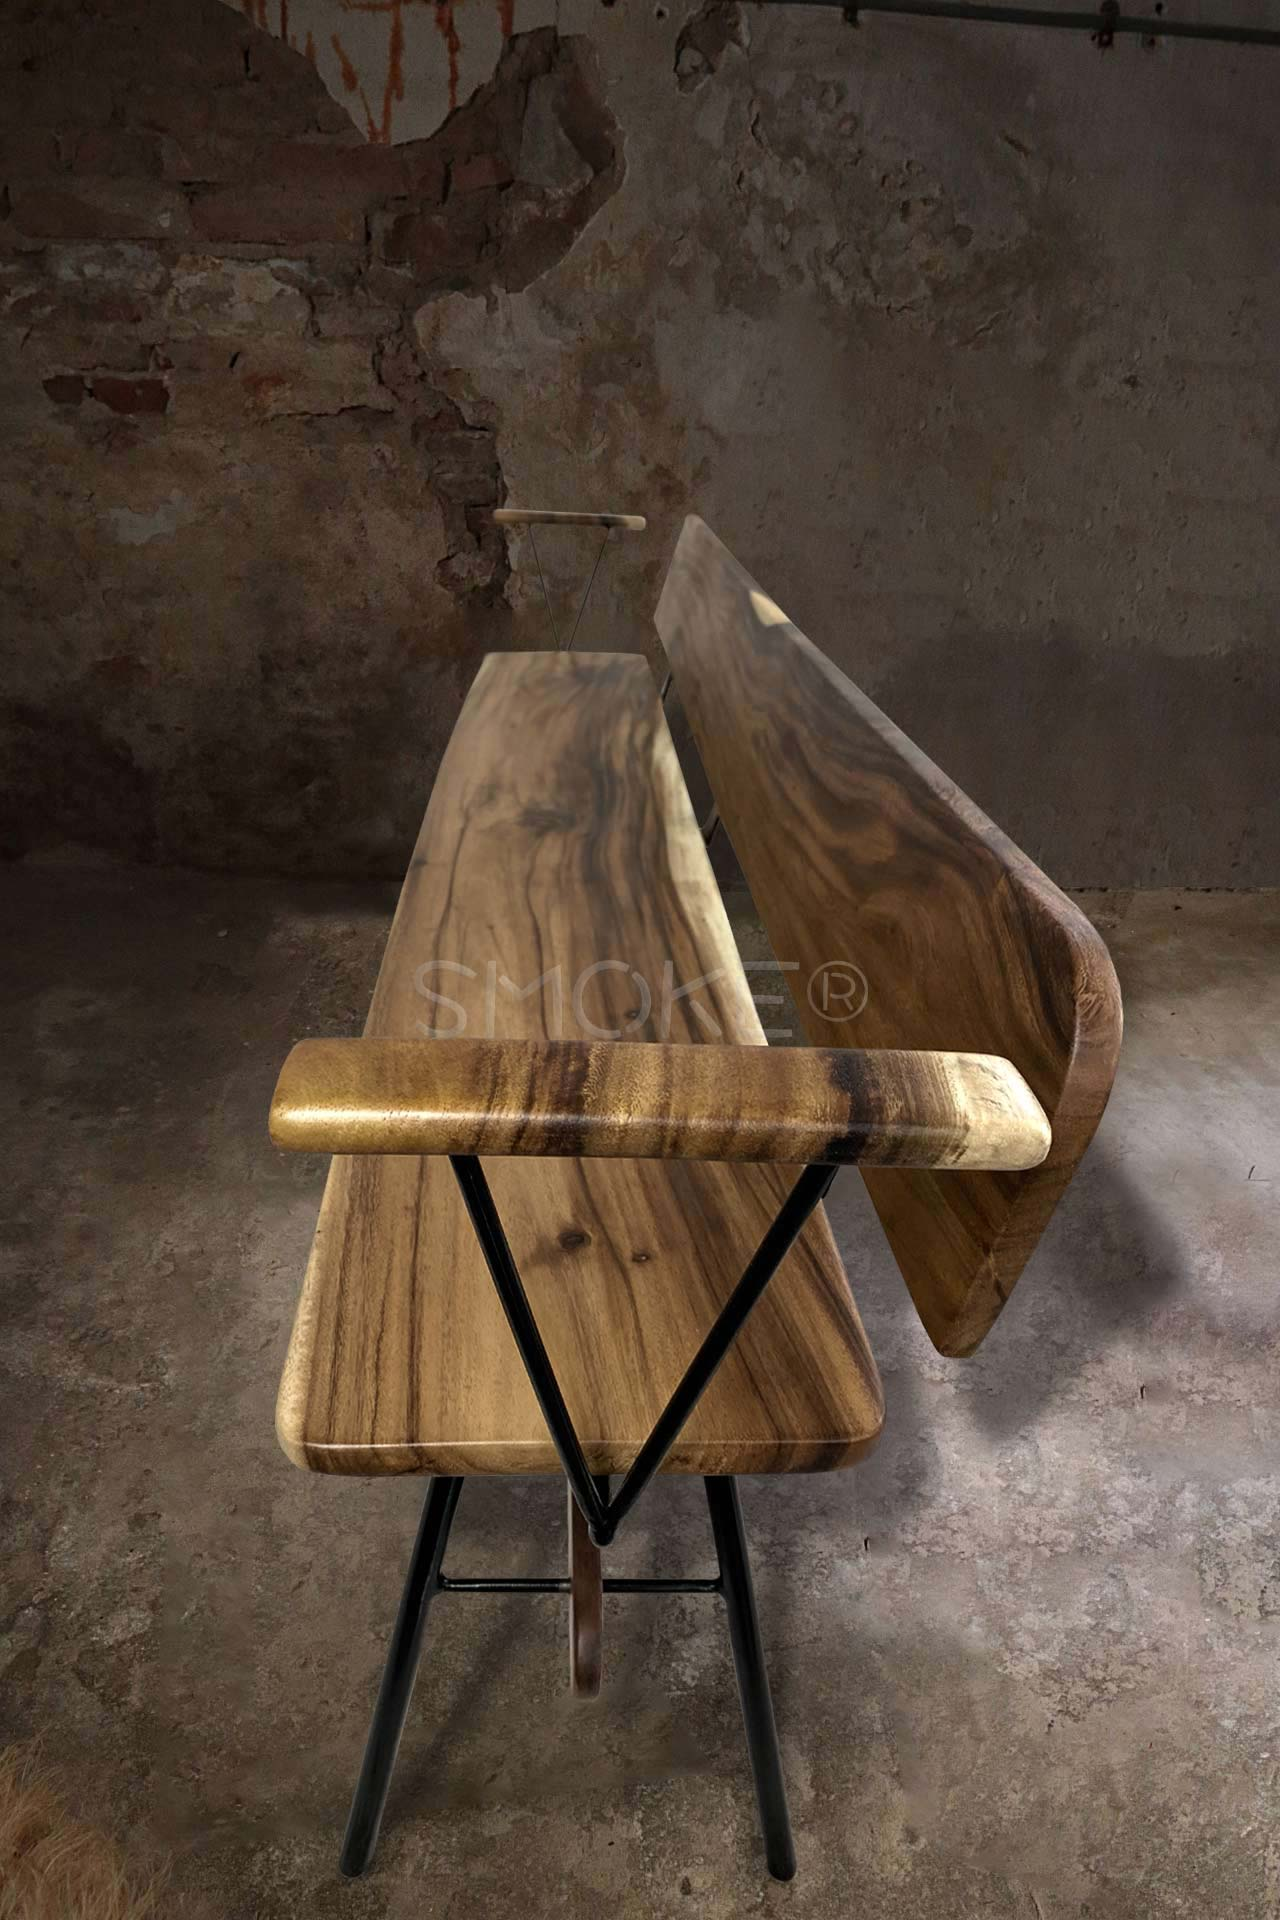 Wooden Bench Top View